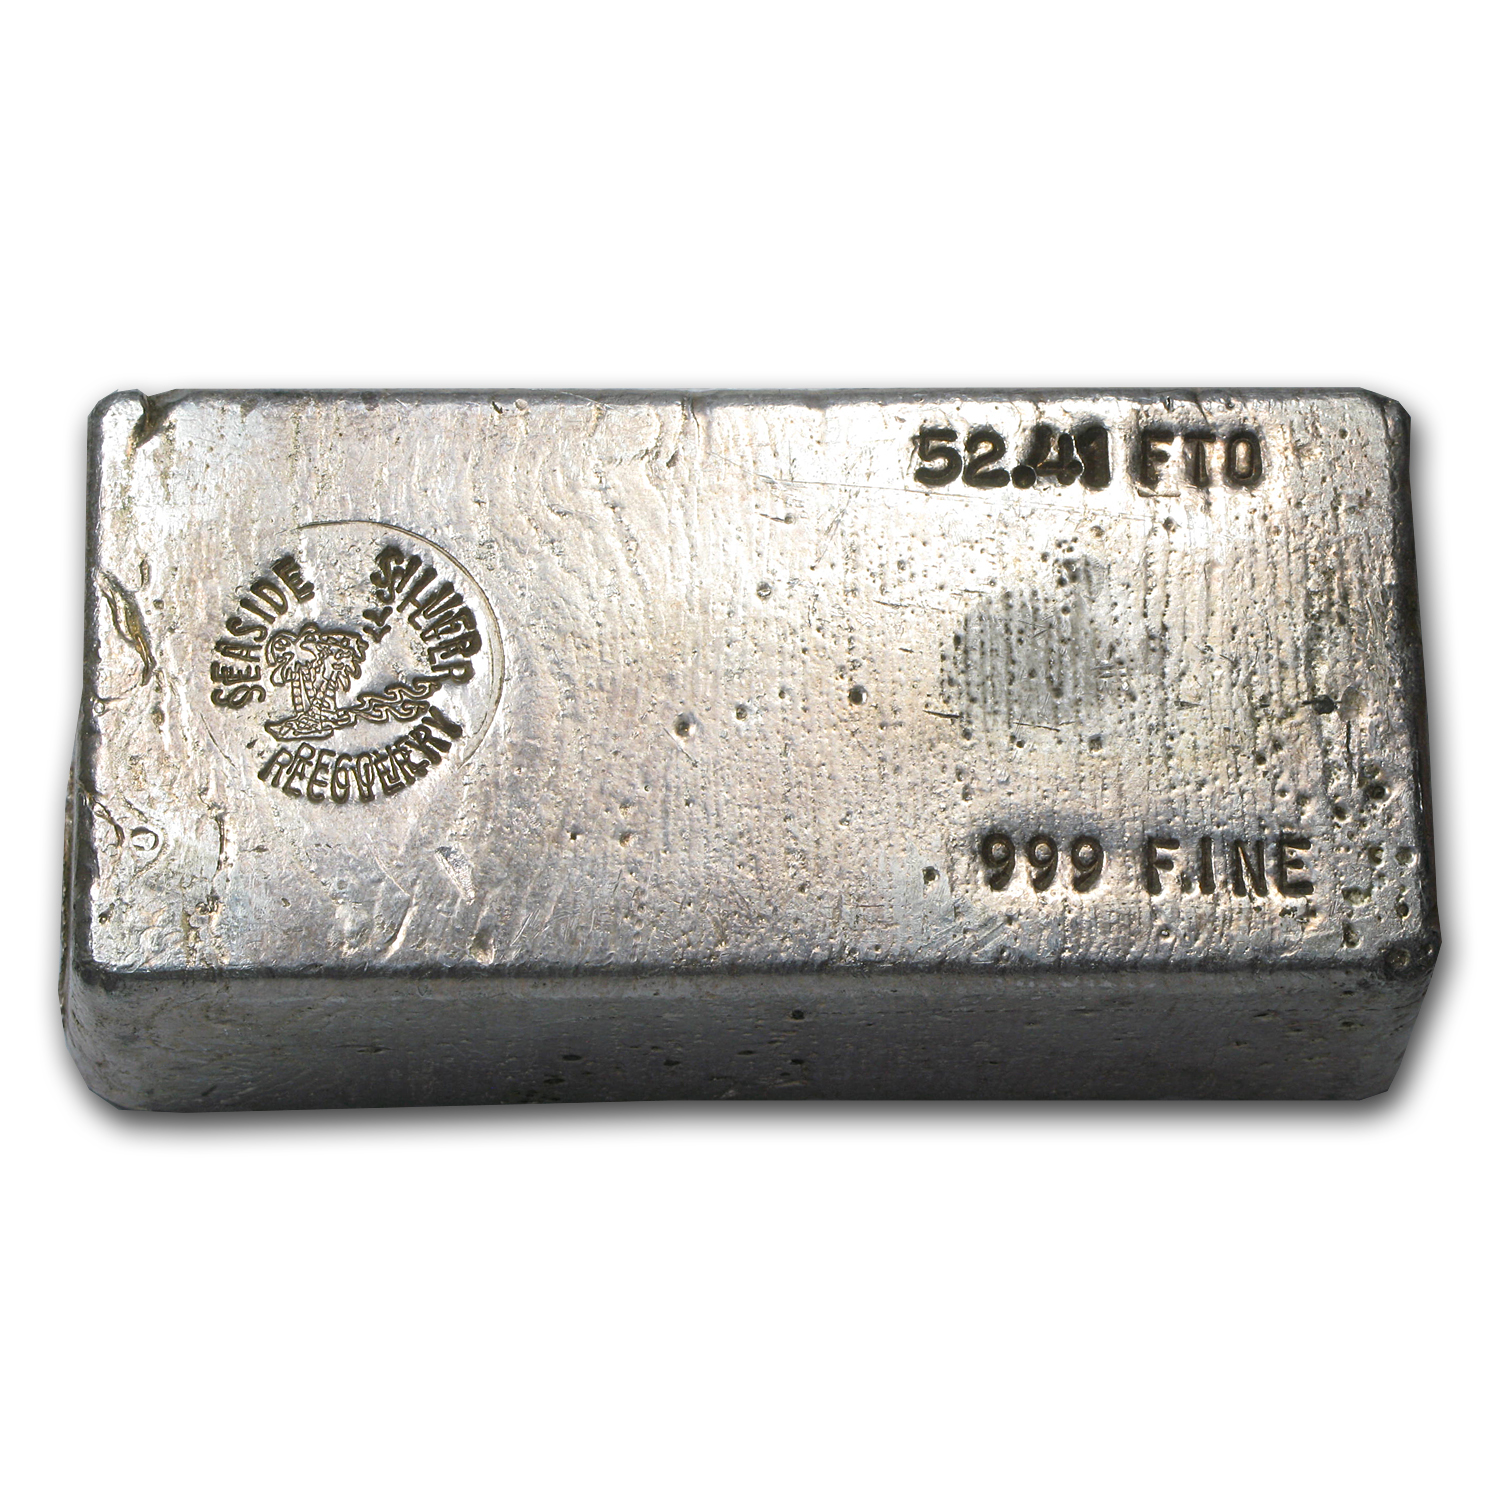 52.41 Silver Bar - Seaside Silver Recovery